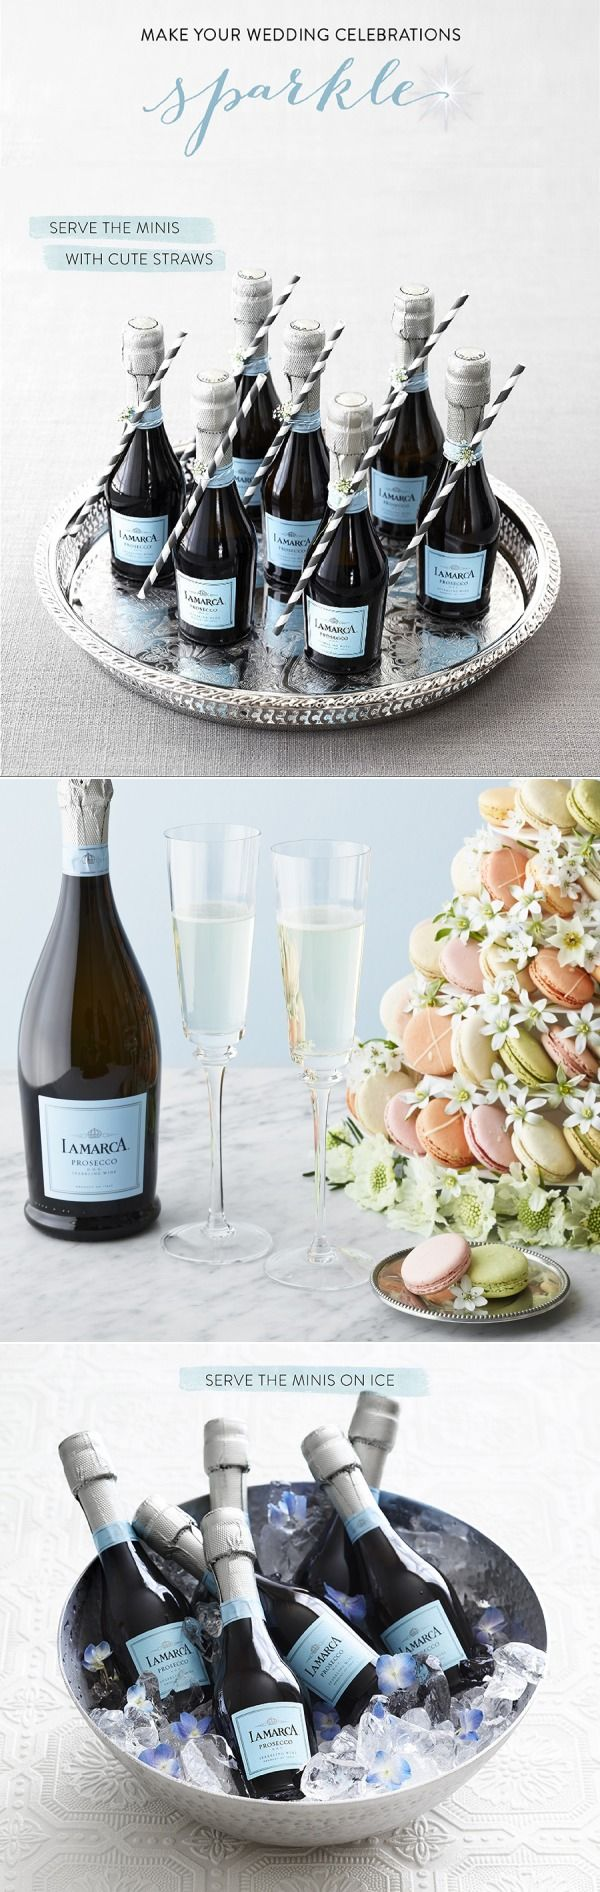 I absolutely love La Marca Prosecco! The mini bottles are also perfect for so many occasions!